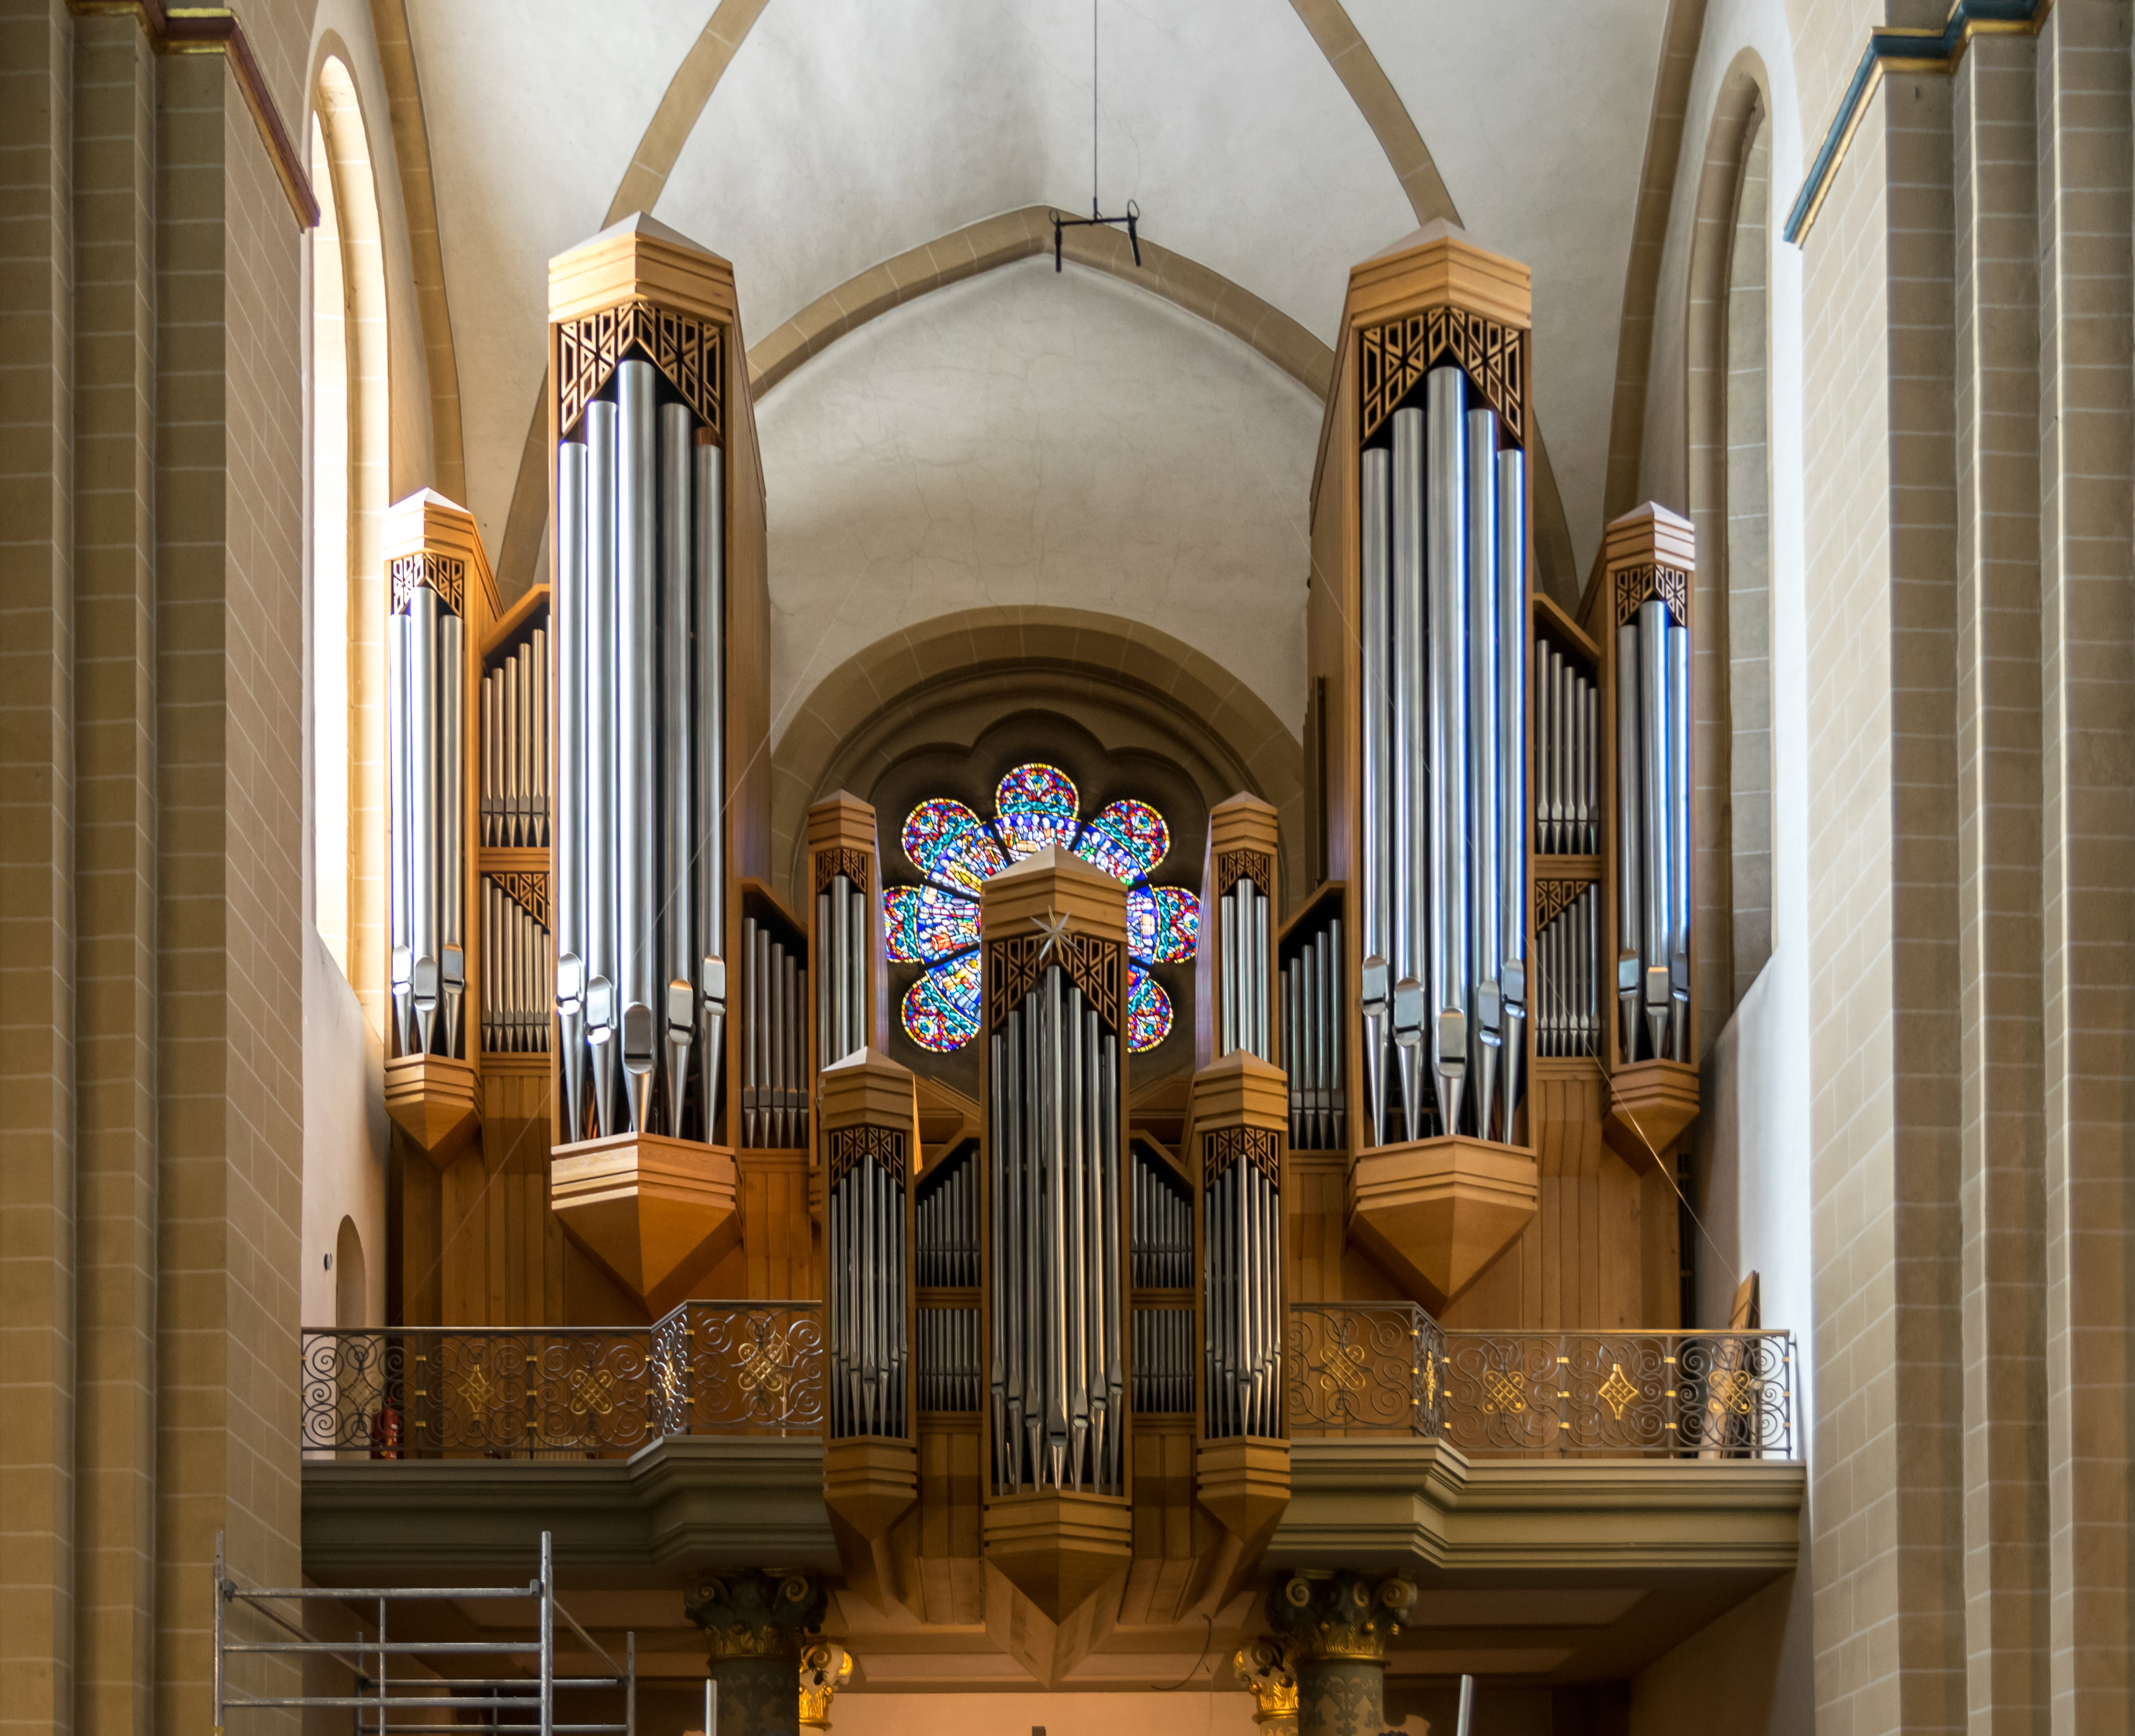 File:Paderborn - 2015-10-10 - Dom, Orgel jpg - Wikimedia Commons